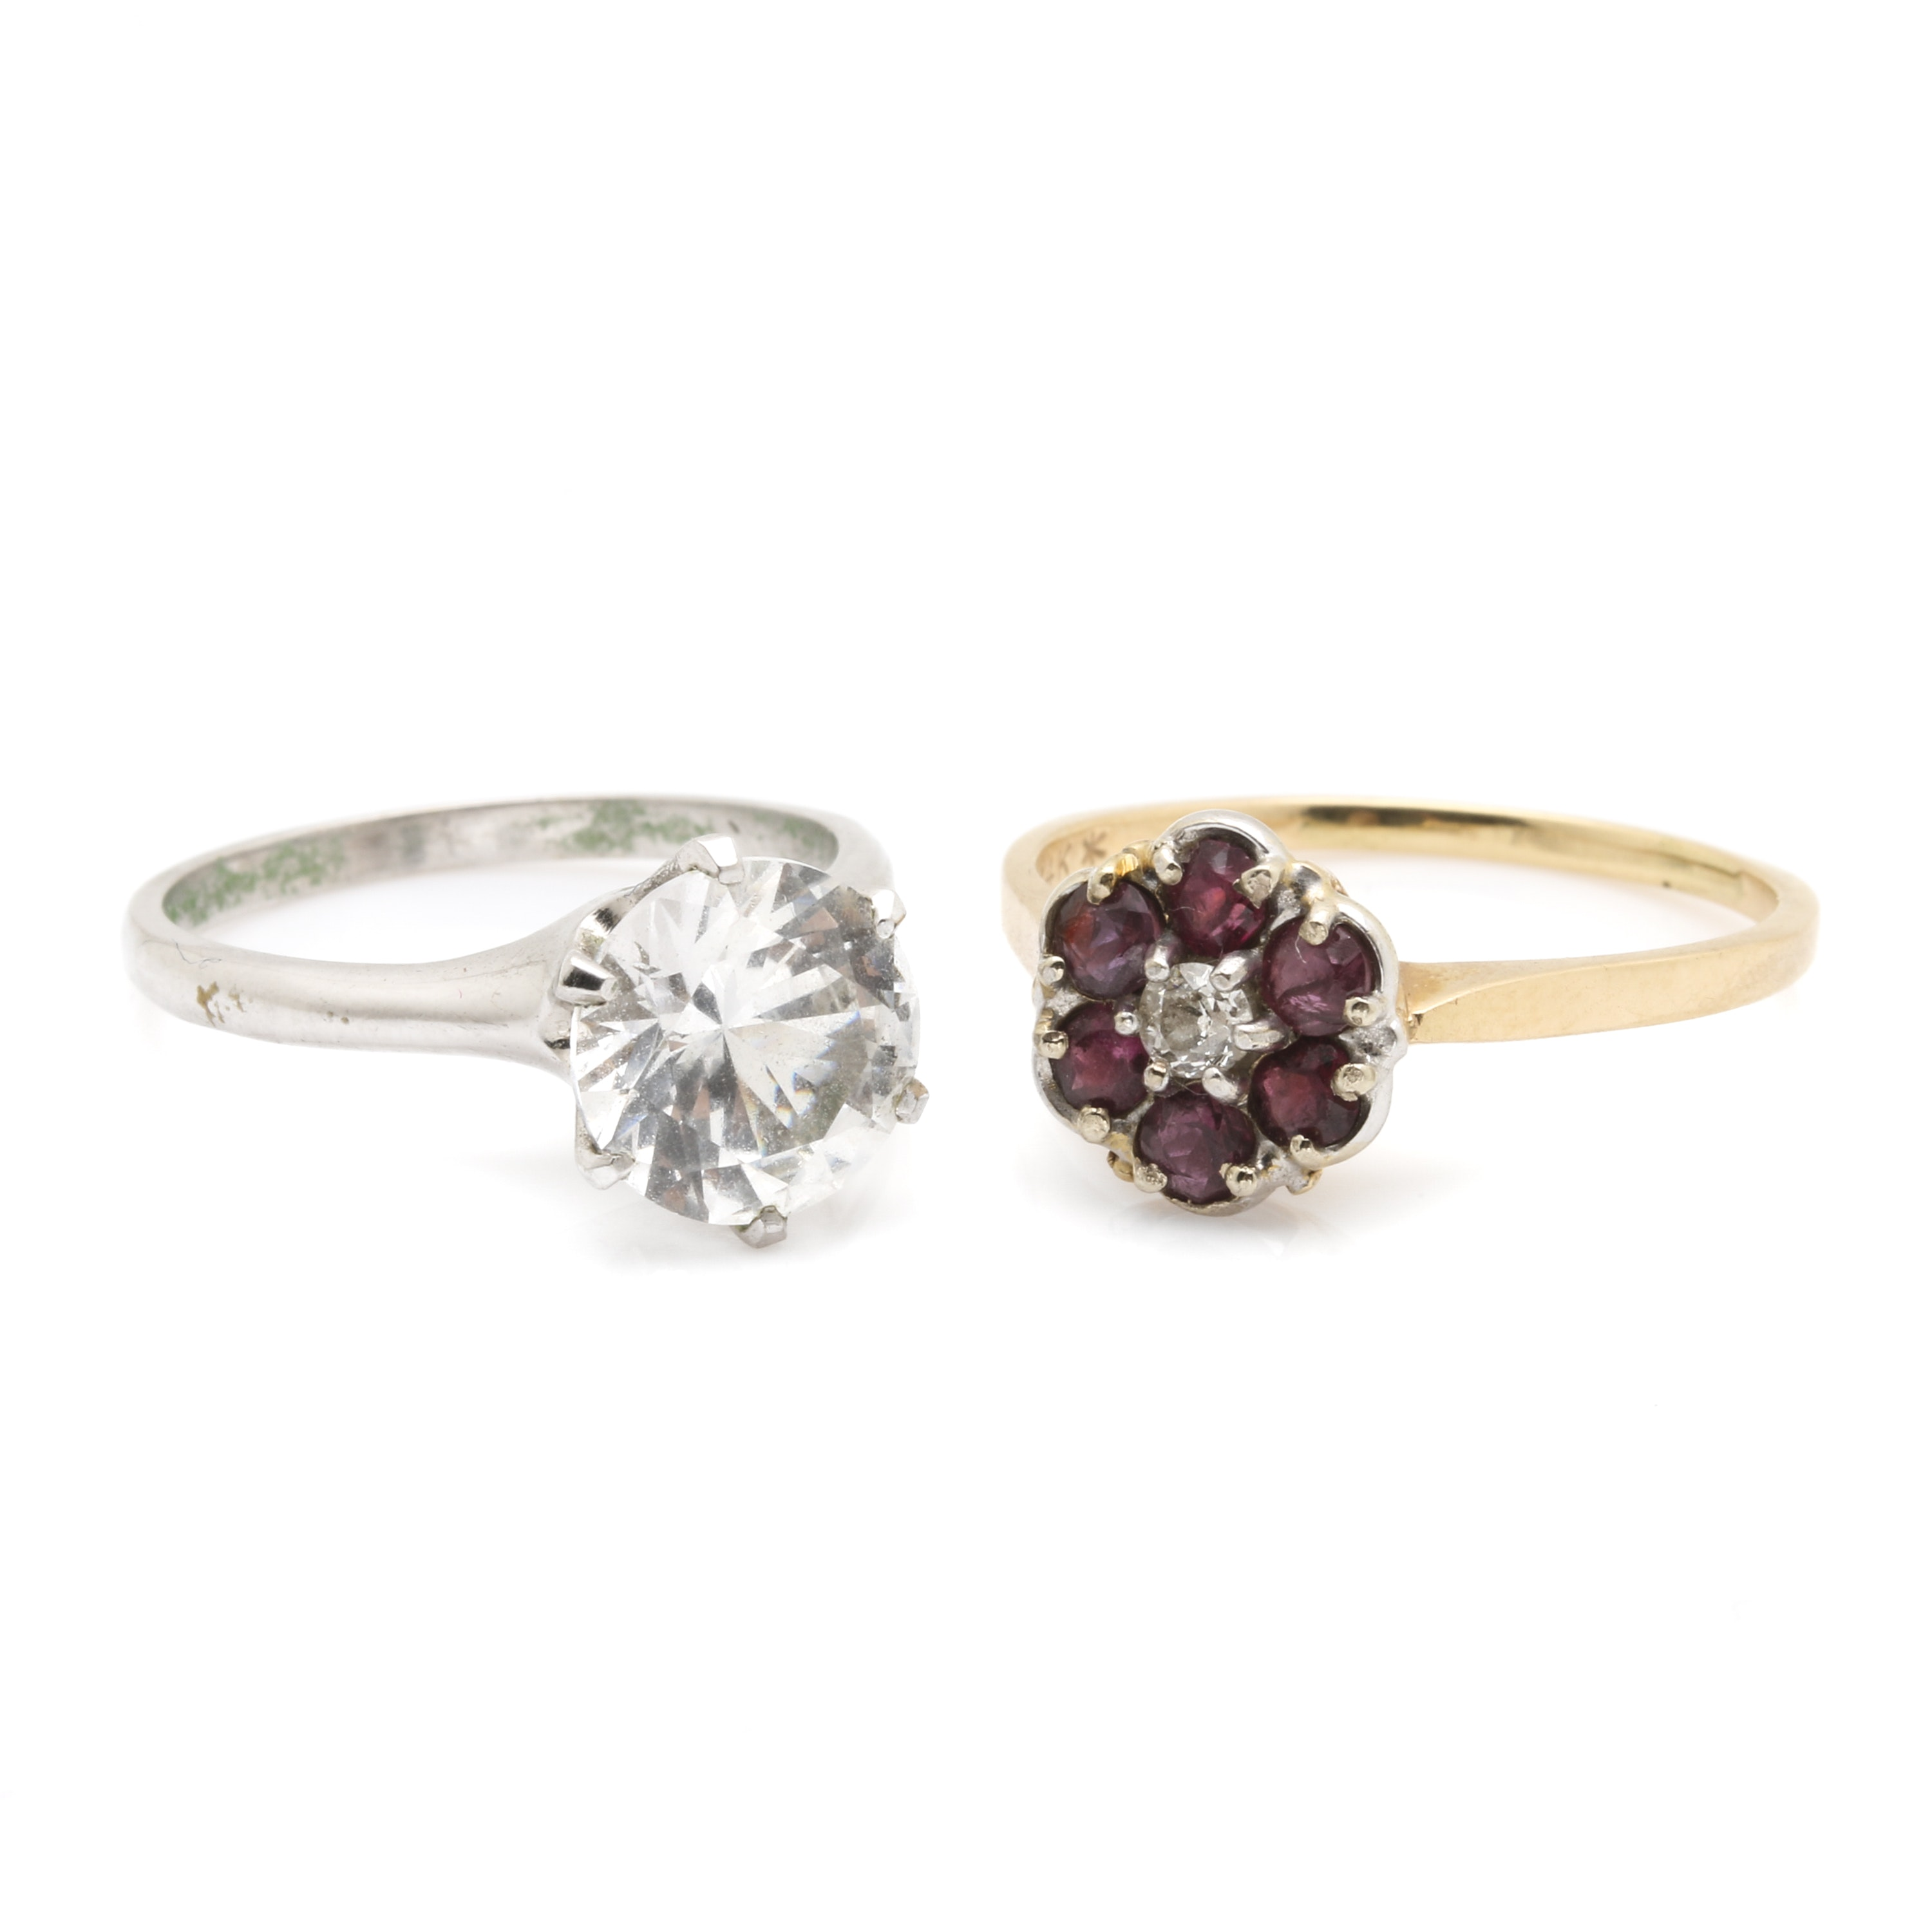 14K White and Yellow Gold Gemstone Rings Including Diamond